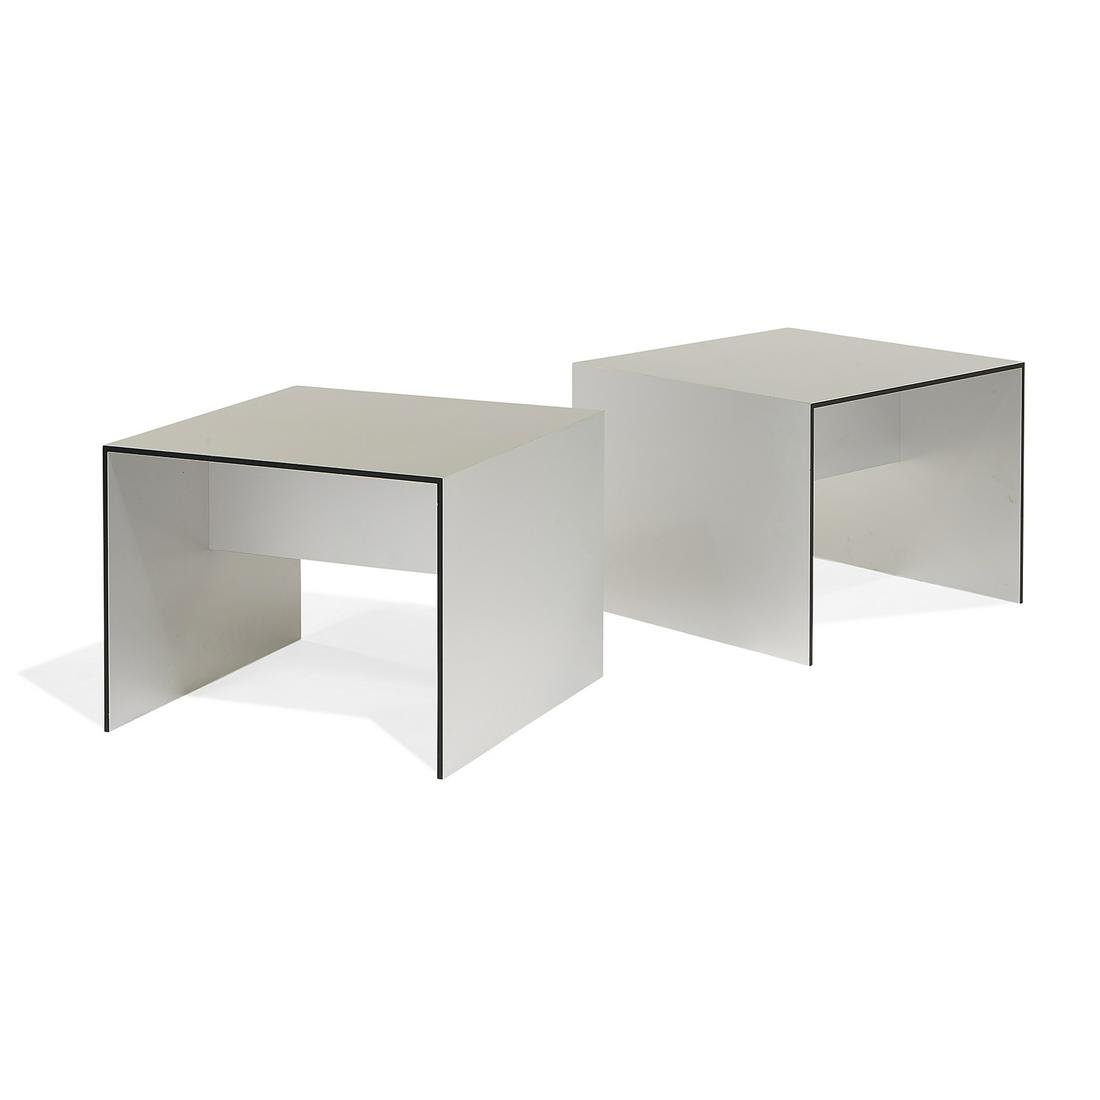 Antonio Citterio for B&B Italia side tables, two